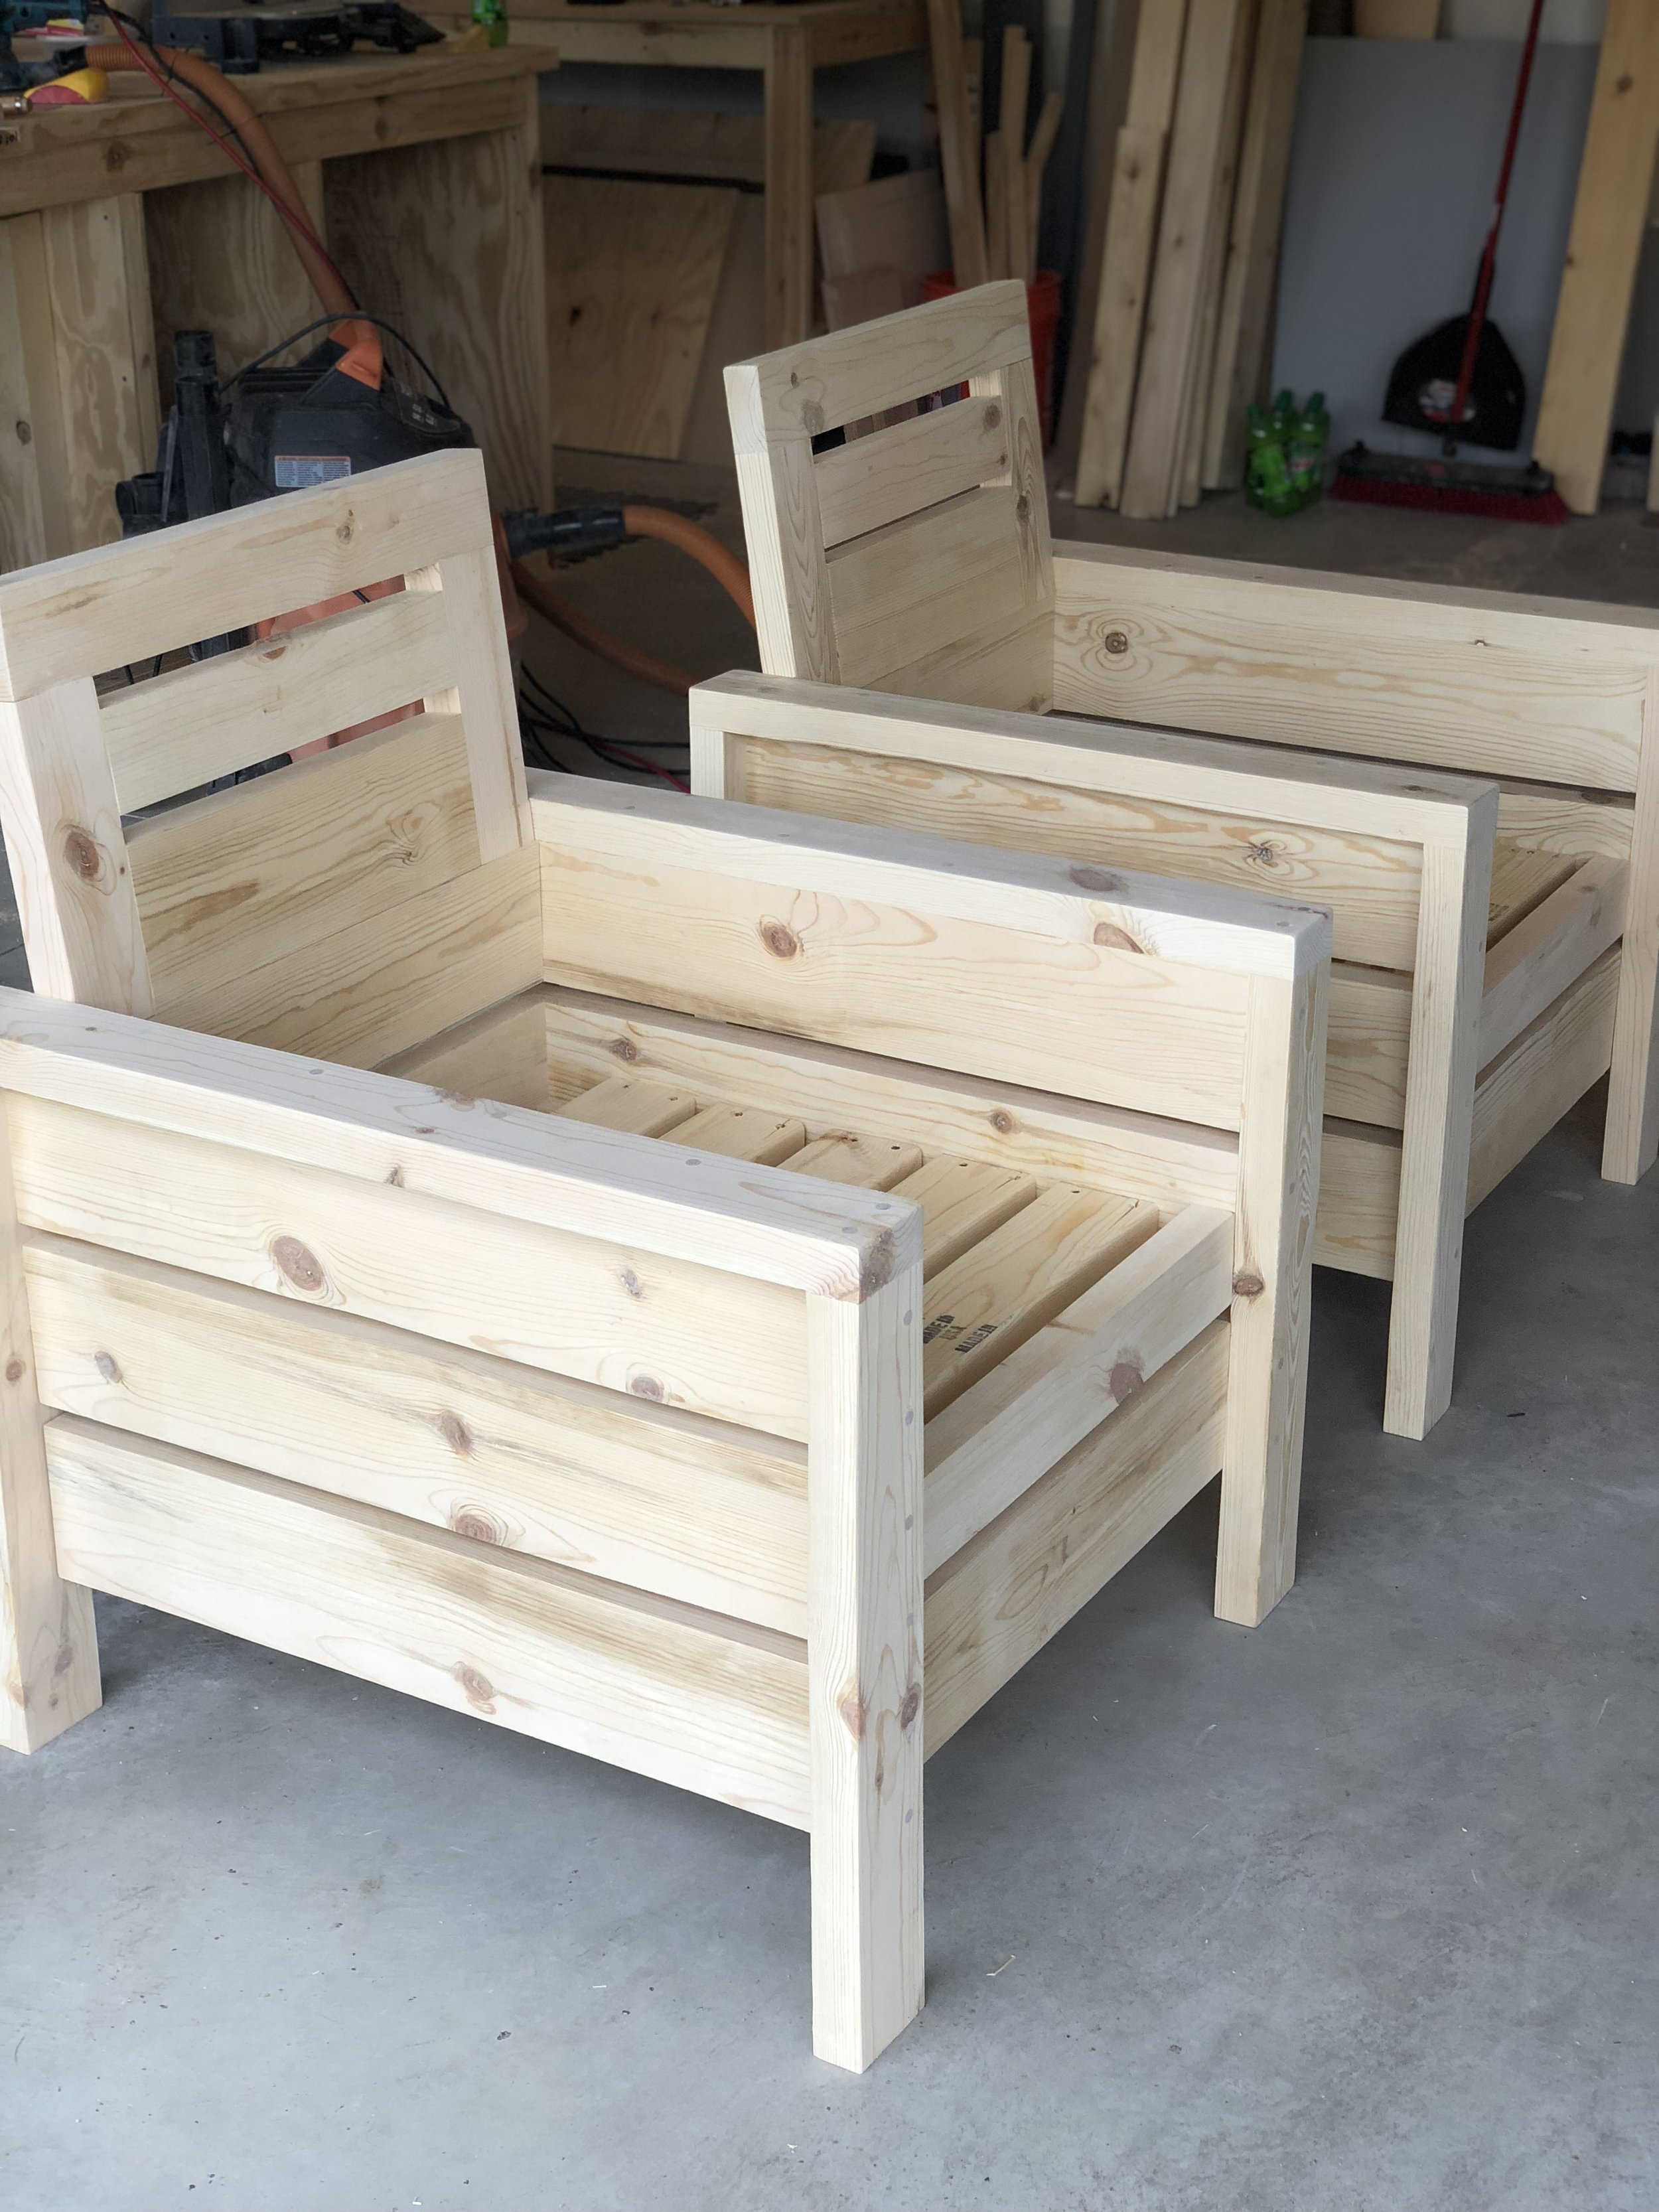 Here are the chairs before I stained them. The simple design and clean lines made these the perfect choice for our front porch. With a per chair cost of $30 in building material, $60 in cushions and $10 in stain we were able to achieve the look of a much more expensive chair.